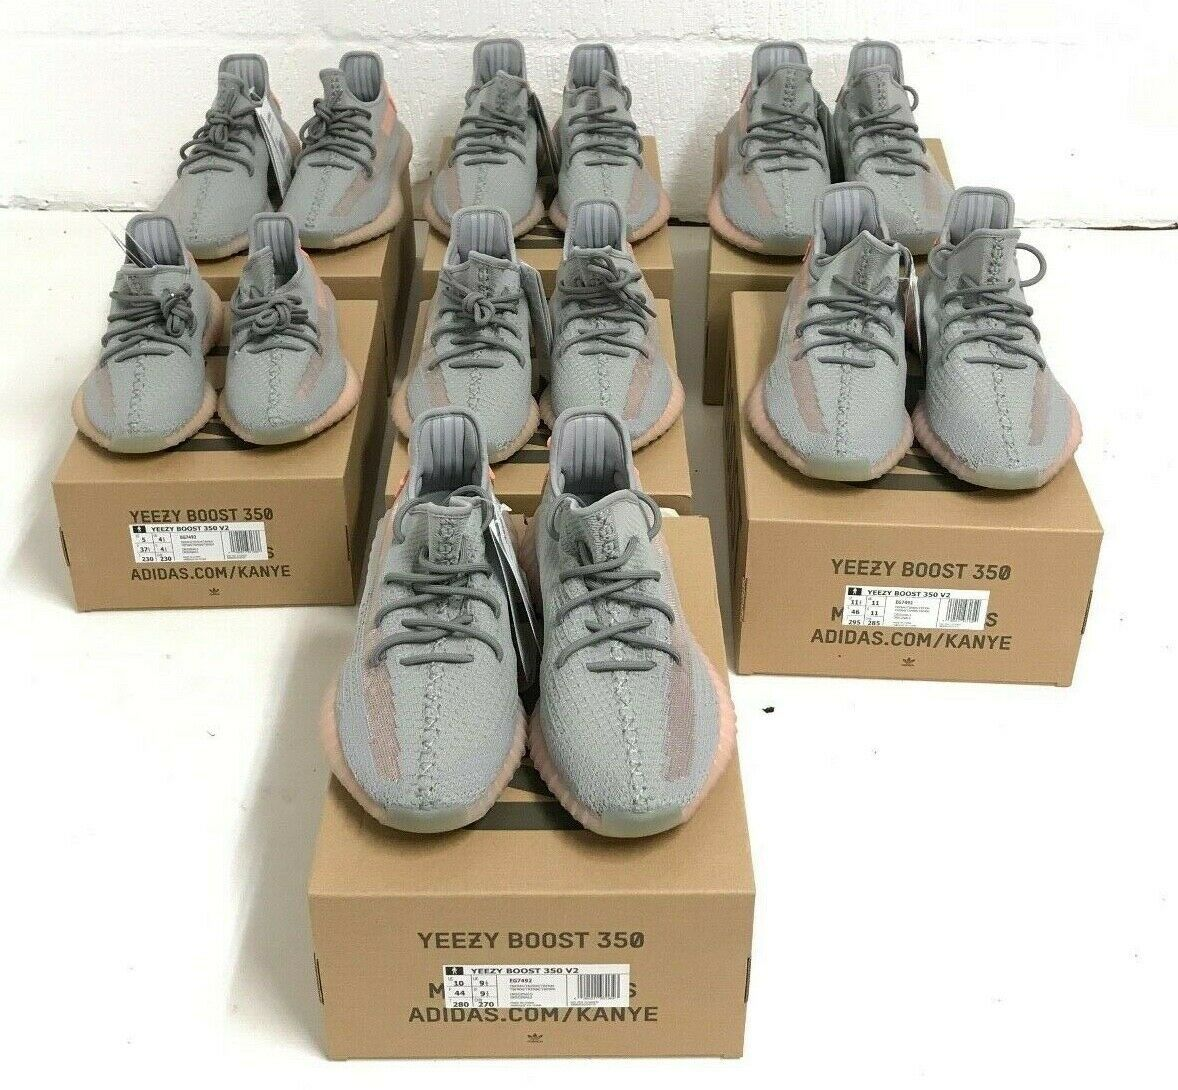 Adidas Yeezy Boost 350 V2  Grey TRFM EG7492 Sizes 3 4.5 5 5.5 6 static 3m 700 image 8